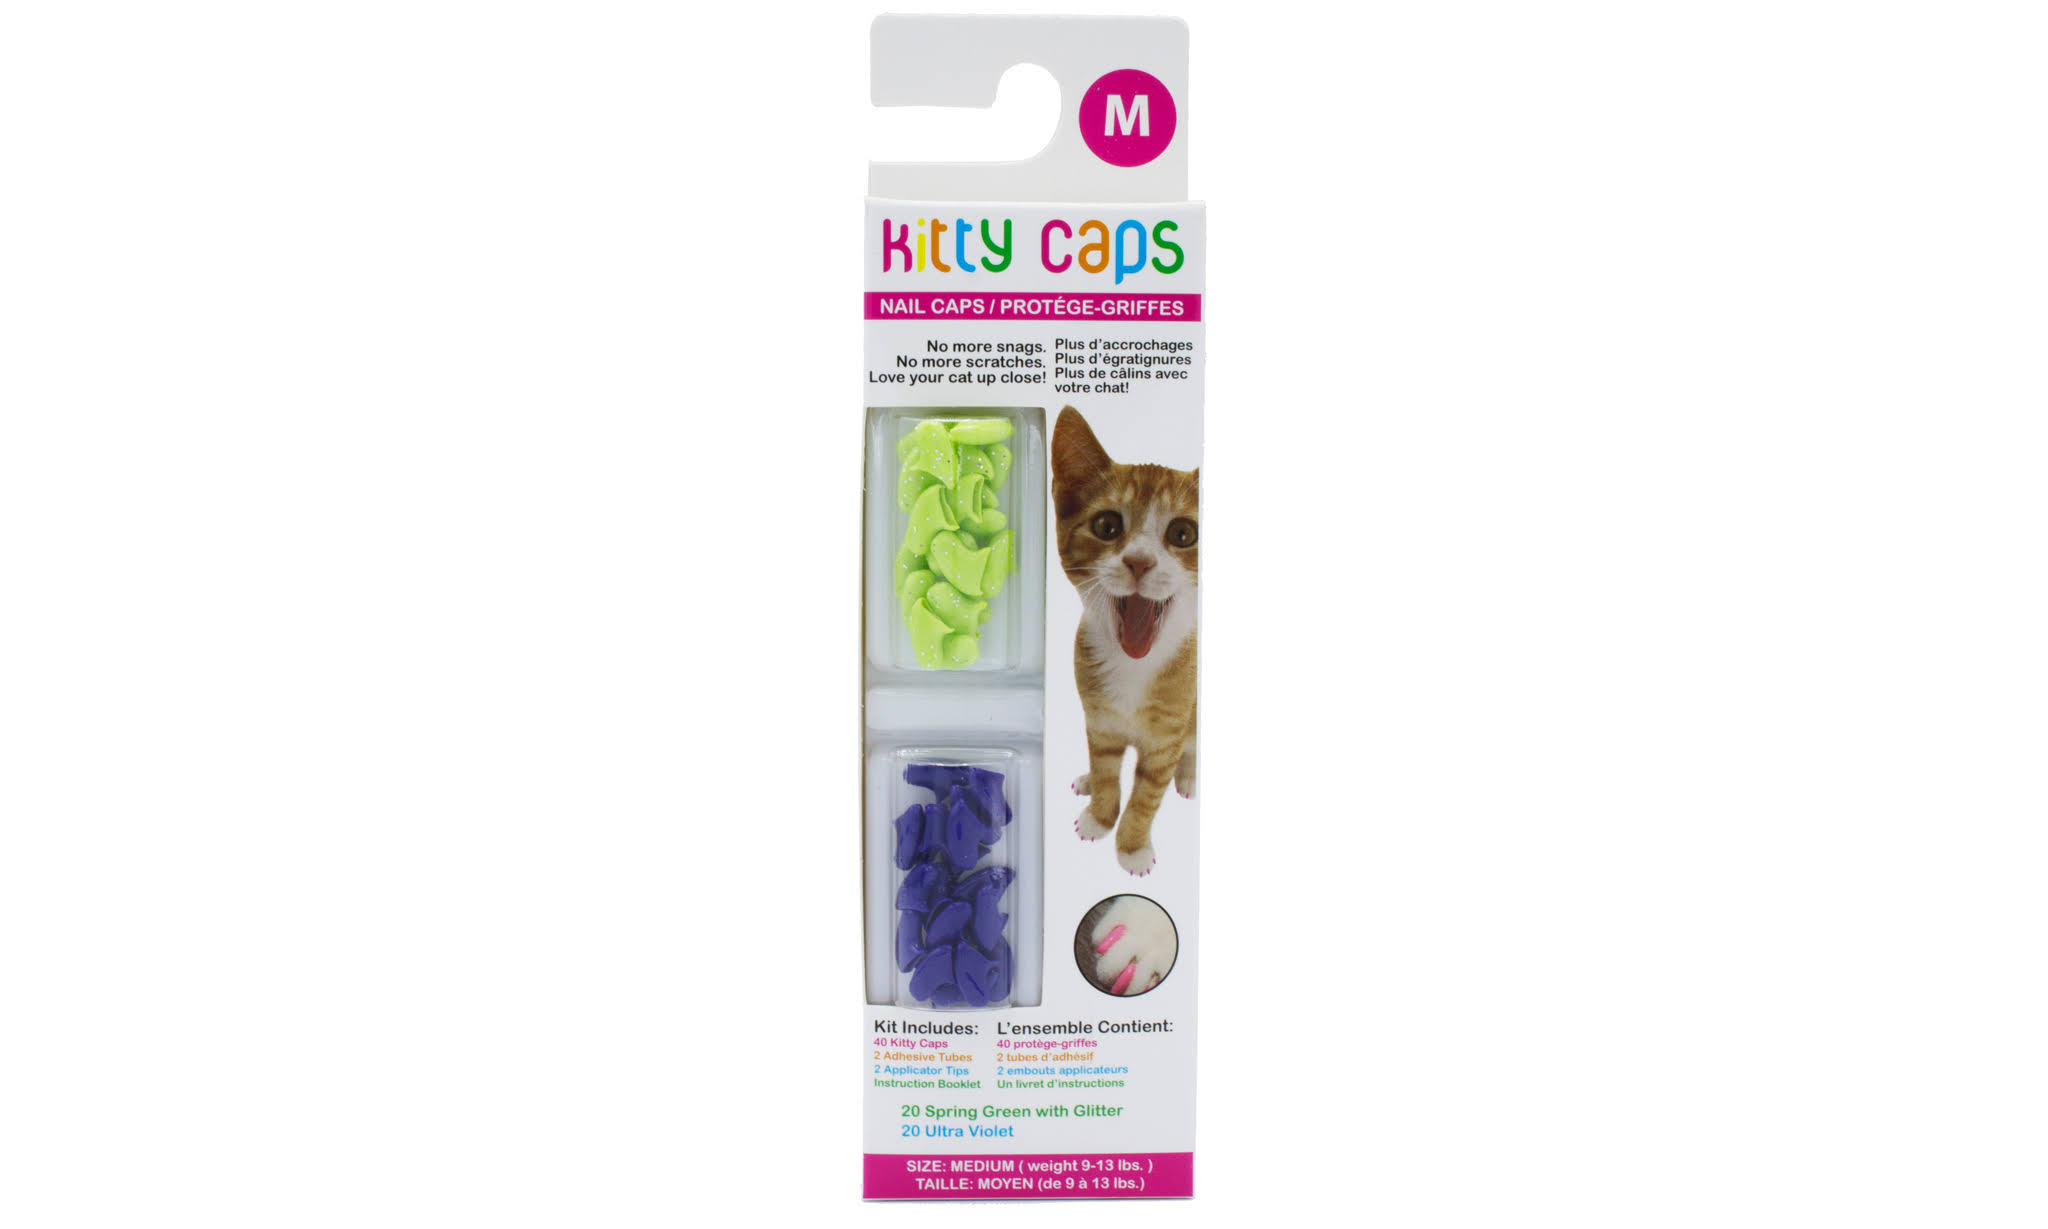 Kitty Caps Cats Nail Caps - Medium, 9 to 13lbs, Green and Purple